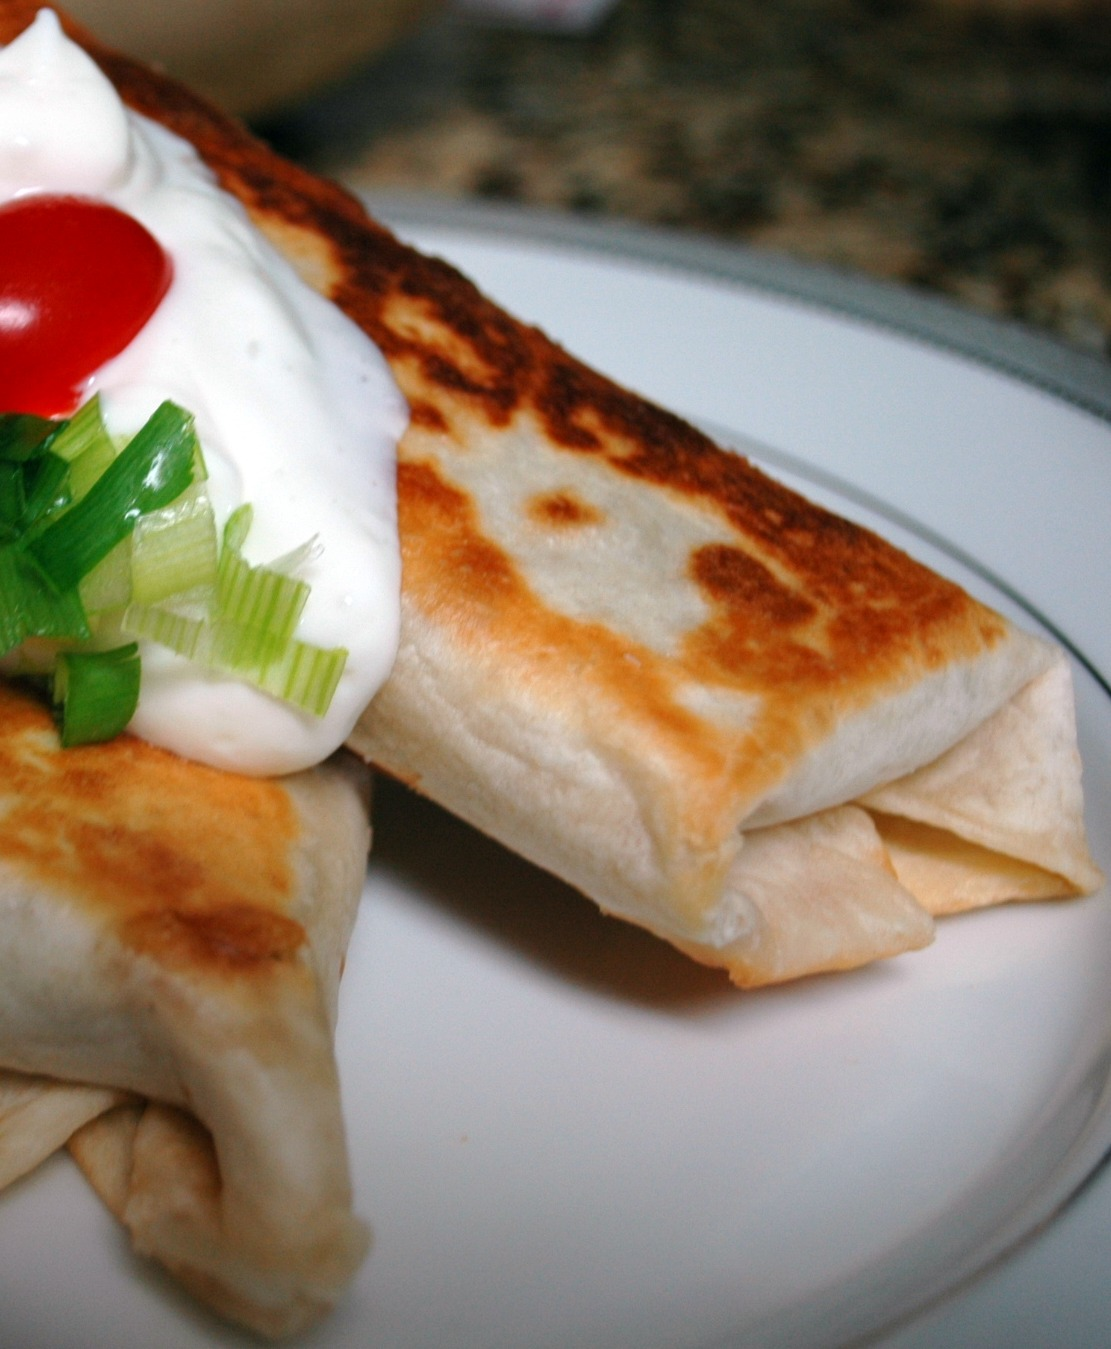 Good Thymes and Good Food: Shredded Beef Chimichangas